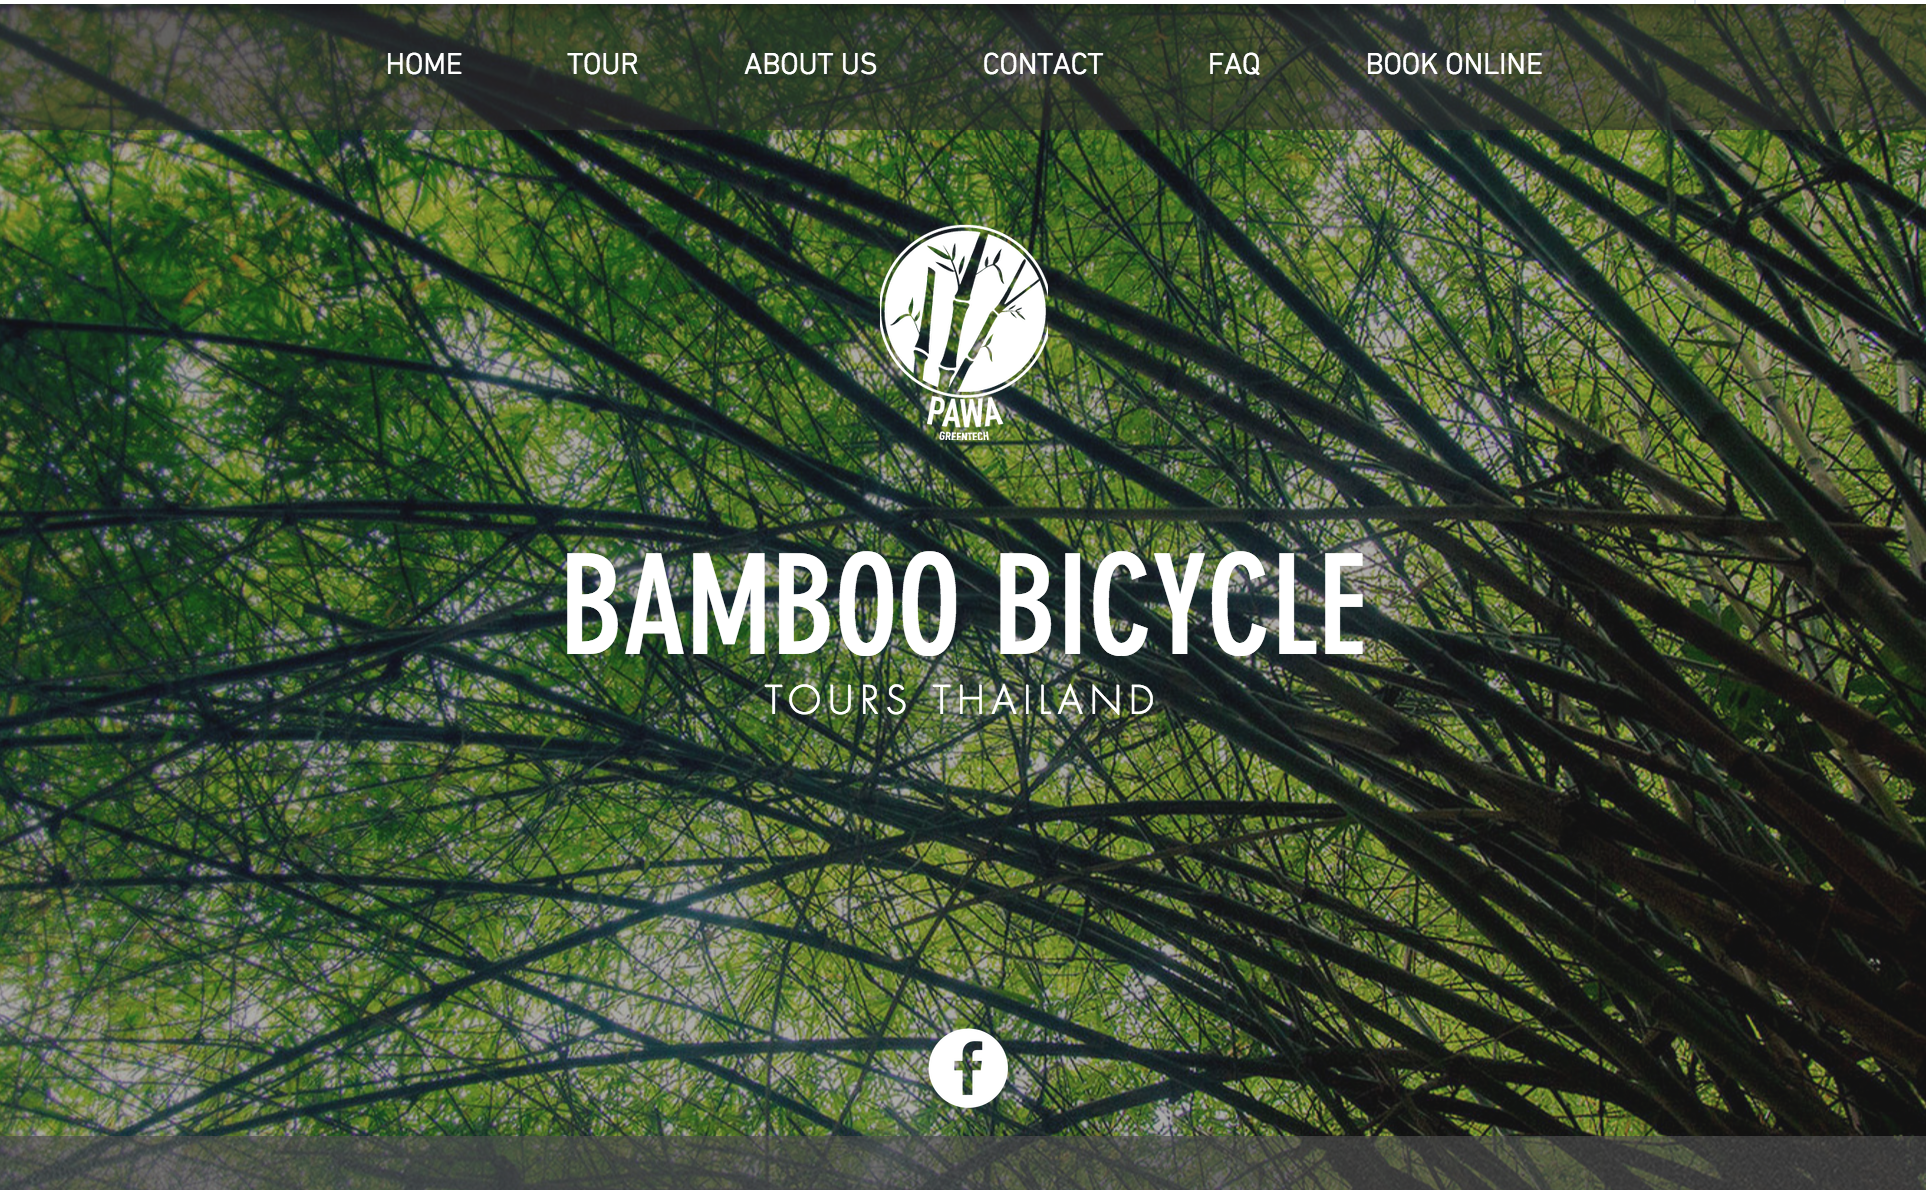 Bamboo Bicycle website